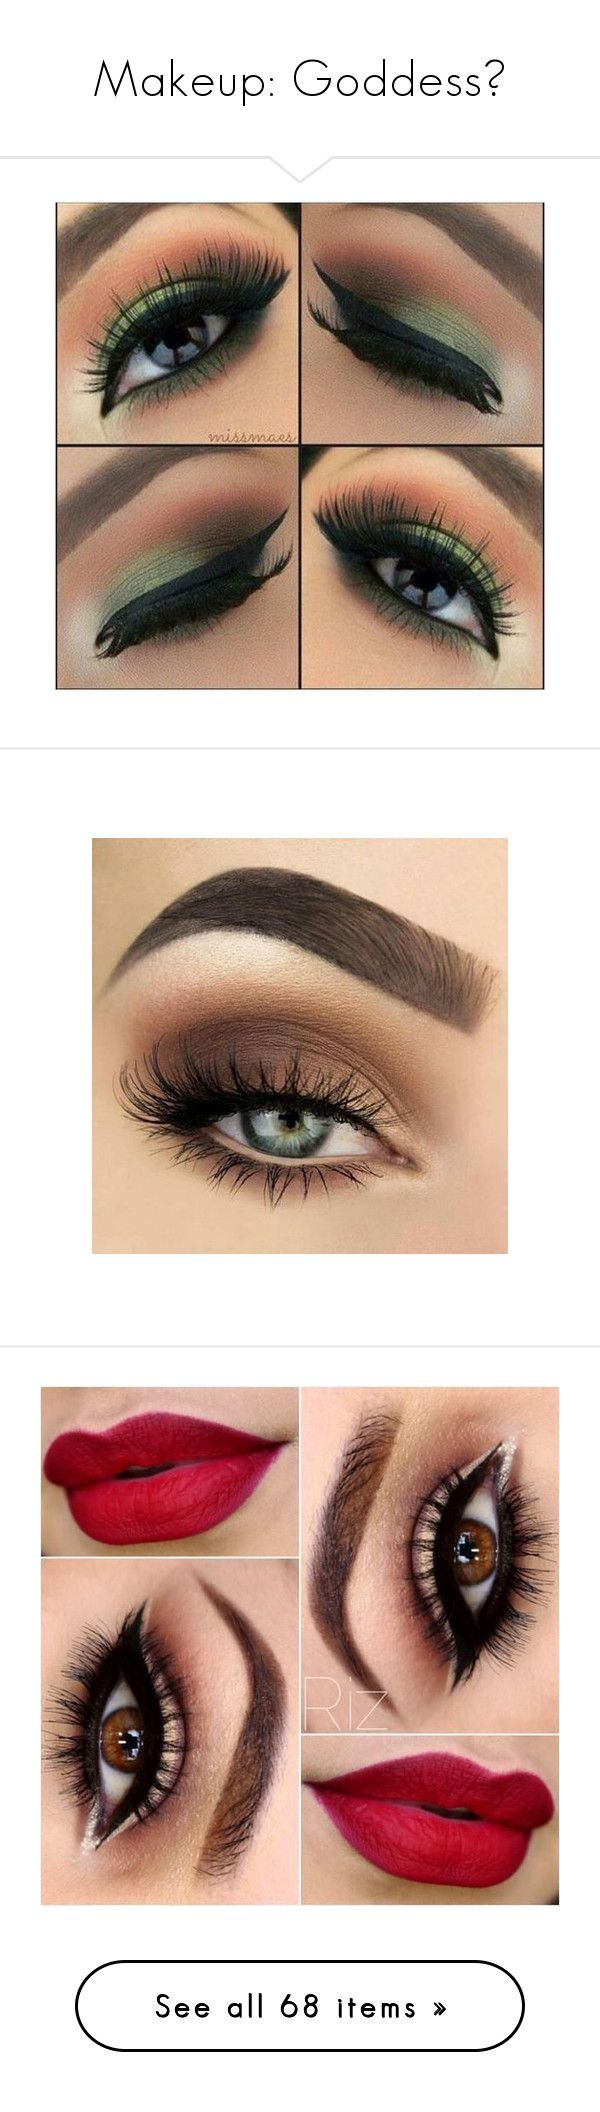 """""""Makeup: Goddess"""" by nattiexo ❤ liked on Polyvore featuring beauty products, makeup, eyes, eye makeup, eye make-up, eyeshadow, lips, beauty, eye brow makeup and gel eye liner"""